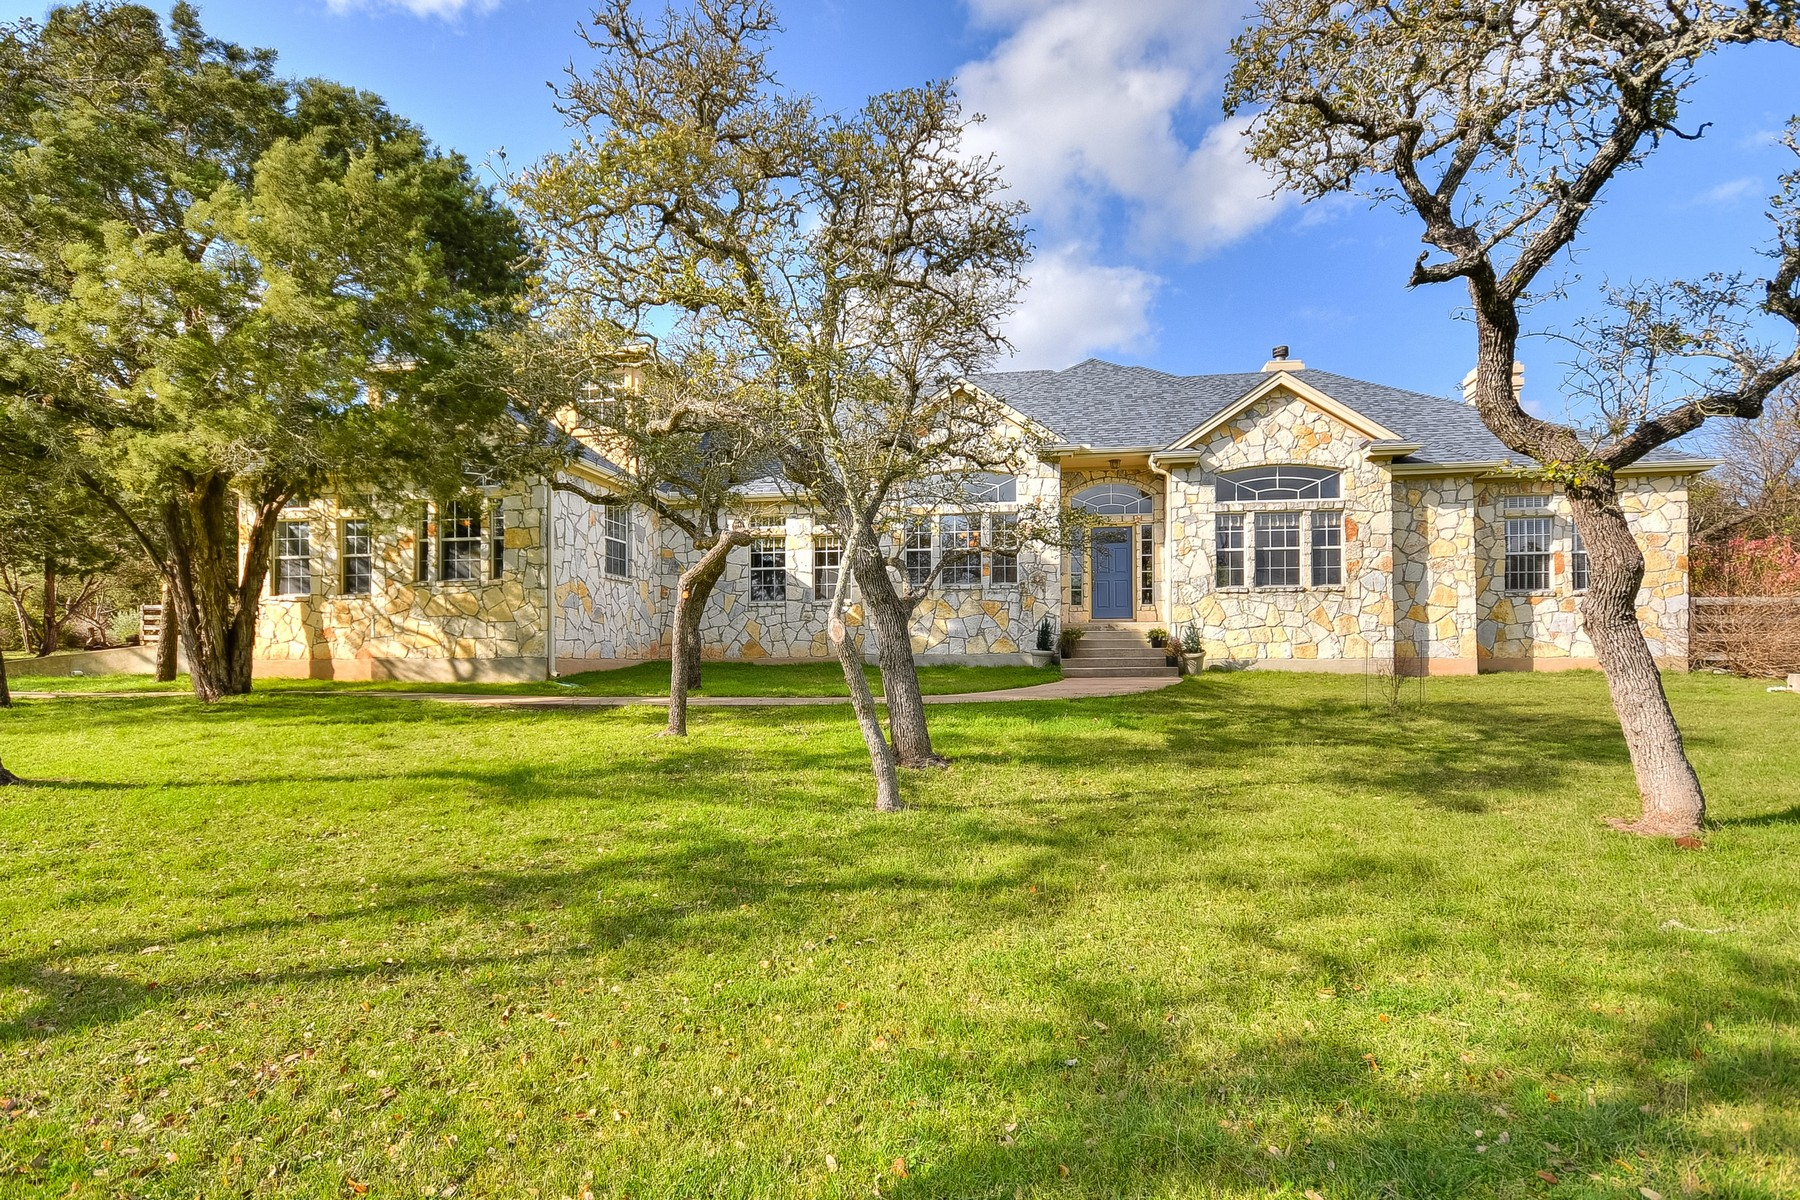 Single Family Home for Sale at Fantastic Entertainer's Home 500 Winchester Dr Dripping Springs, Texas 78620 United States